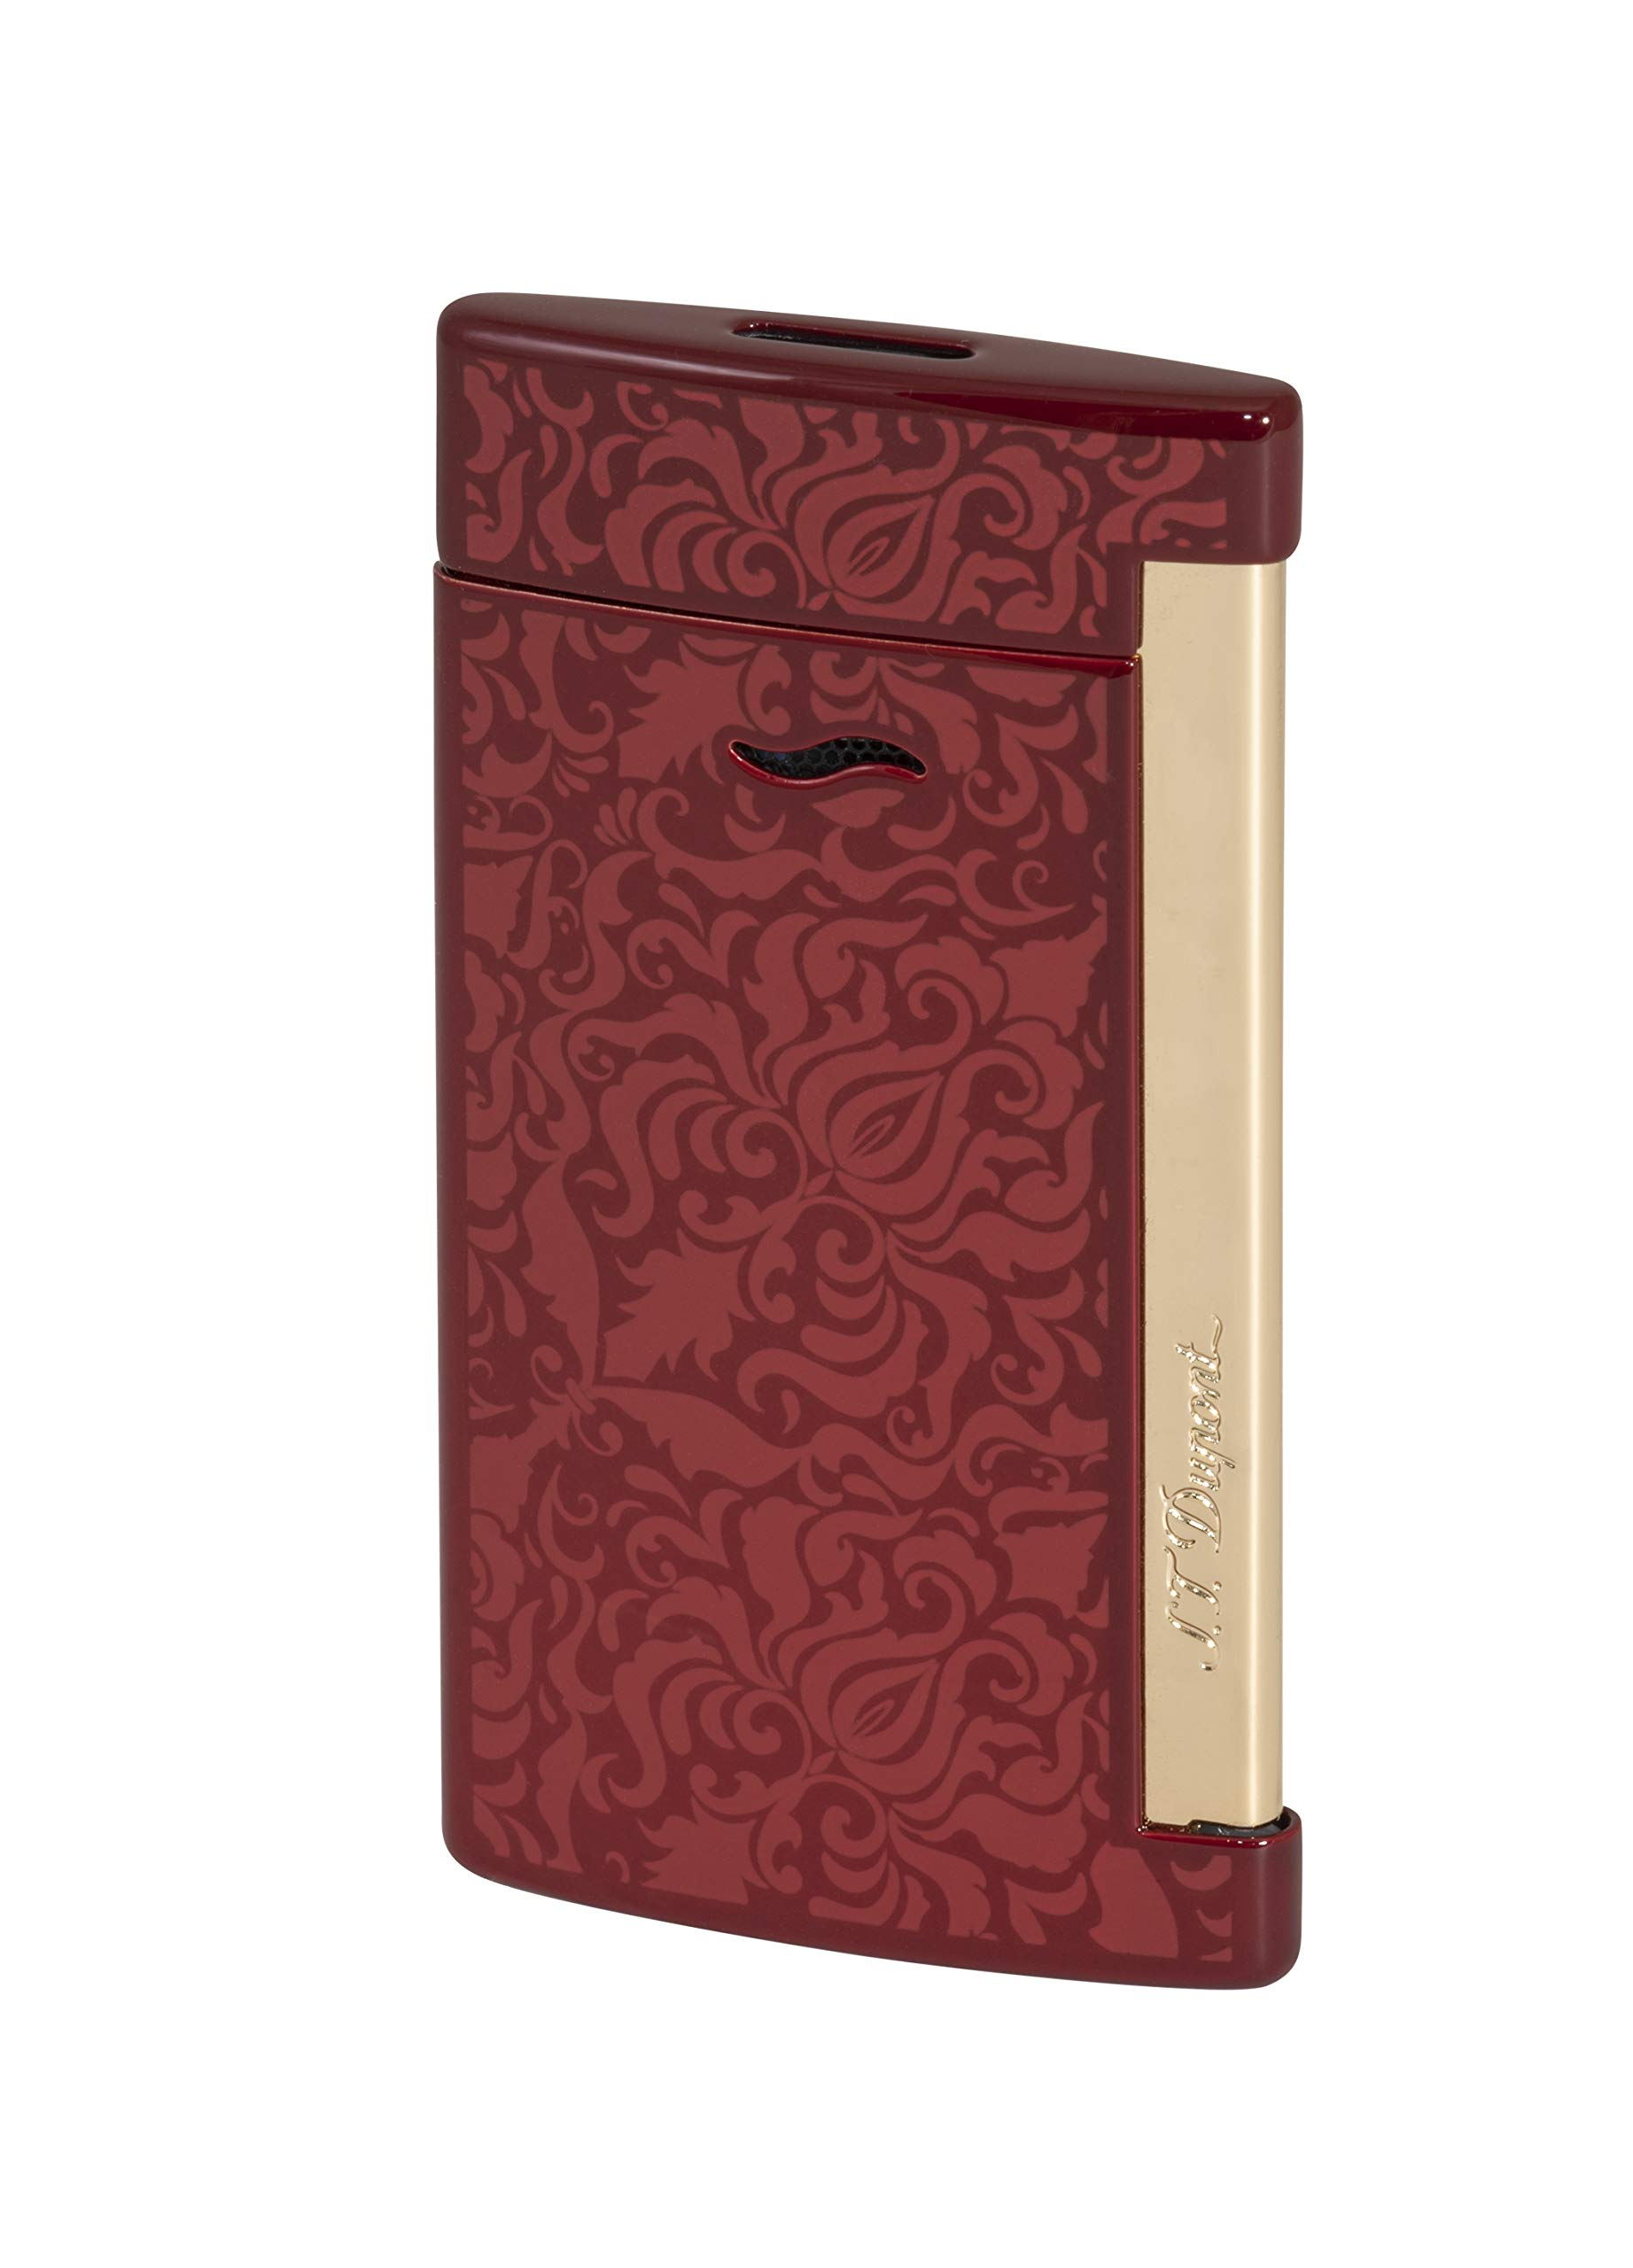 S.T. Dupont red Baroque Slim 7 Lighter by S.T. Dupont